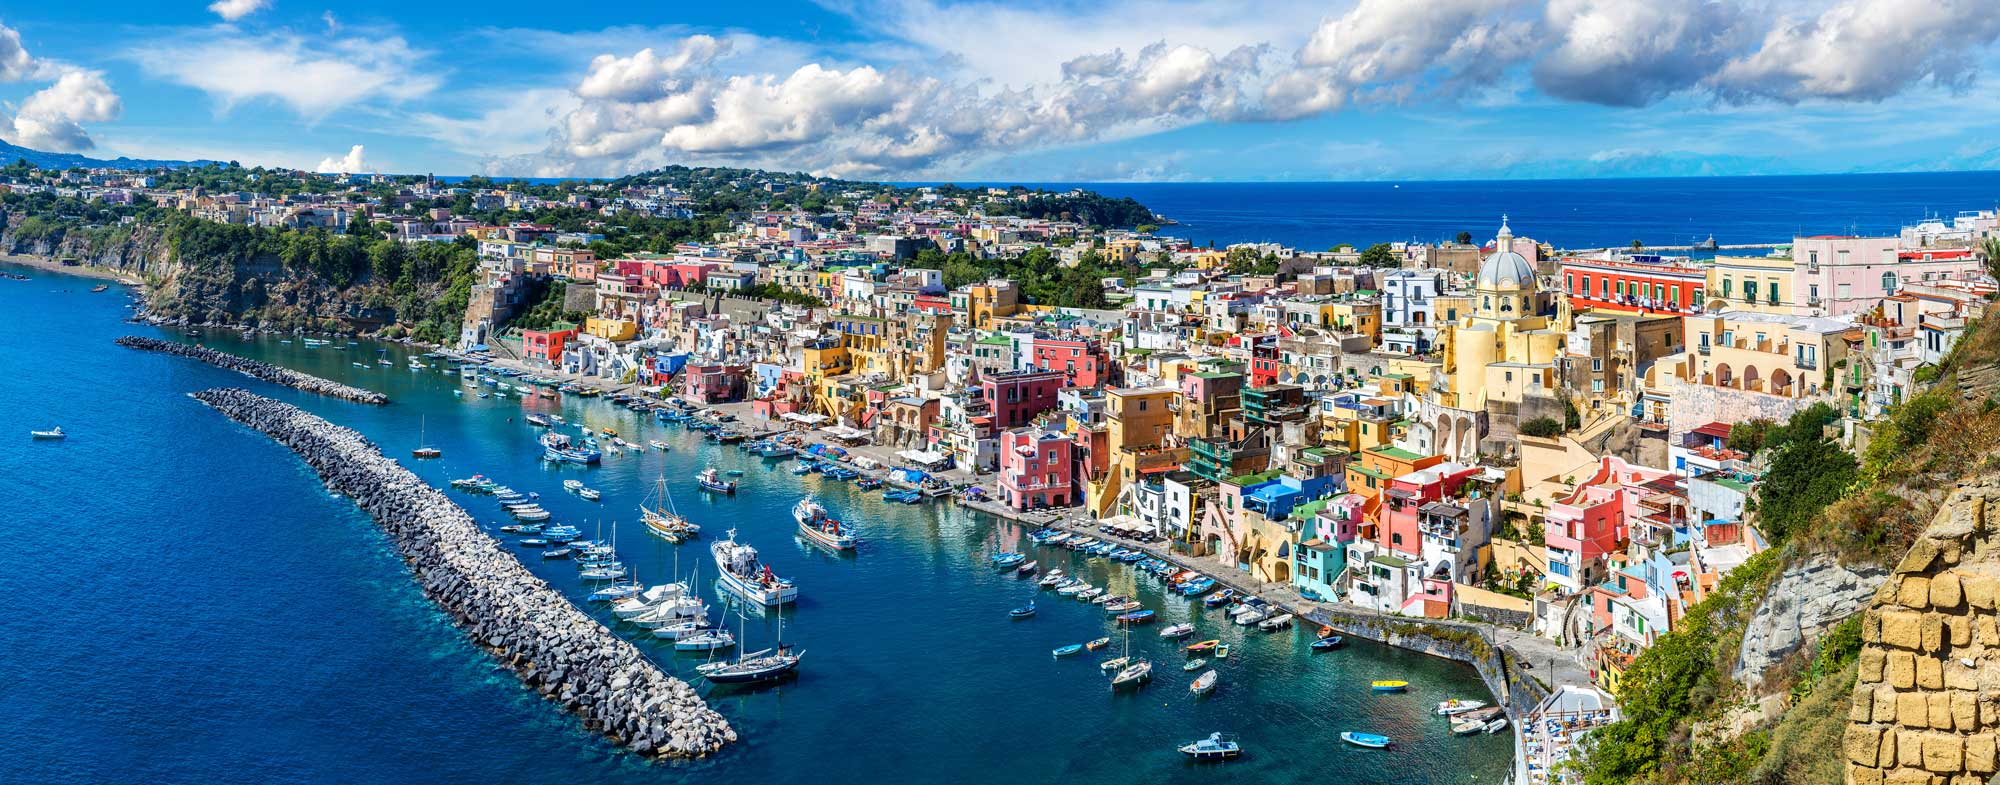 Tour To Isschia And Procida From Sorrento